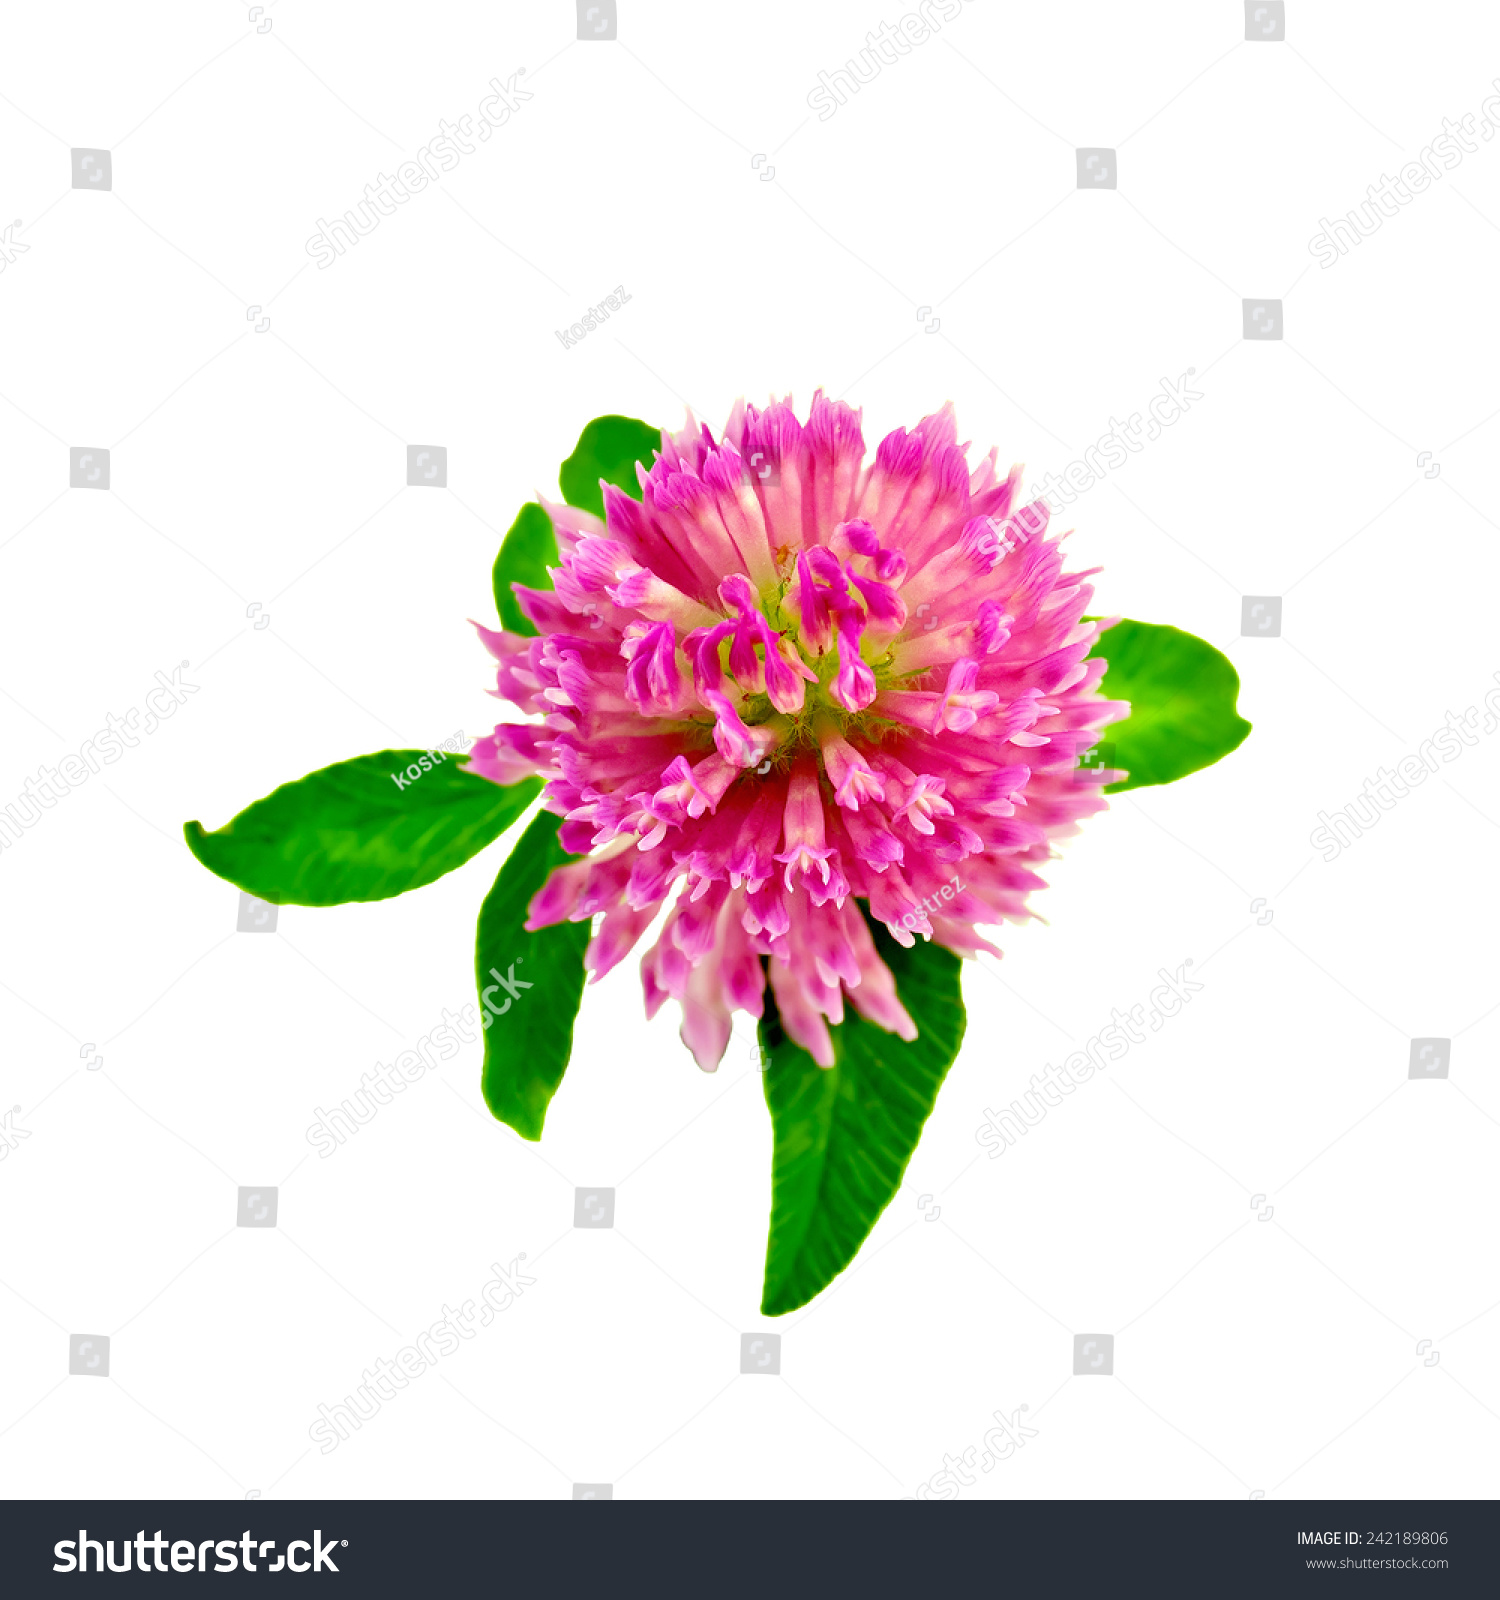 One Pink Clover Flower With Green Leaves Isolated On White